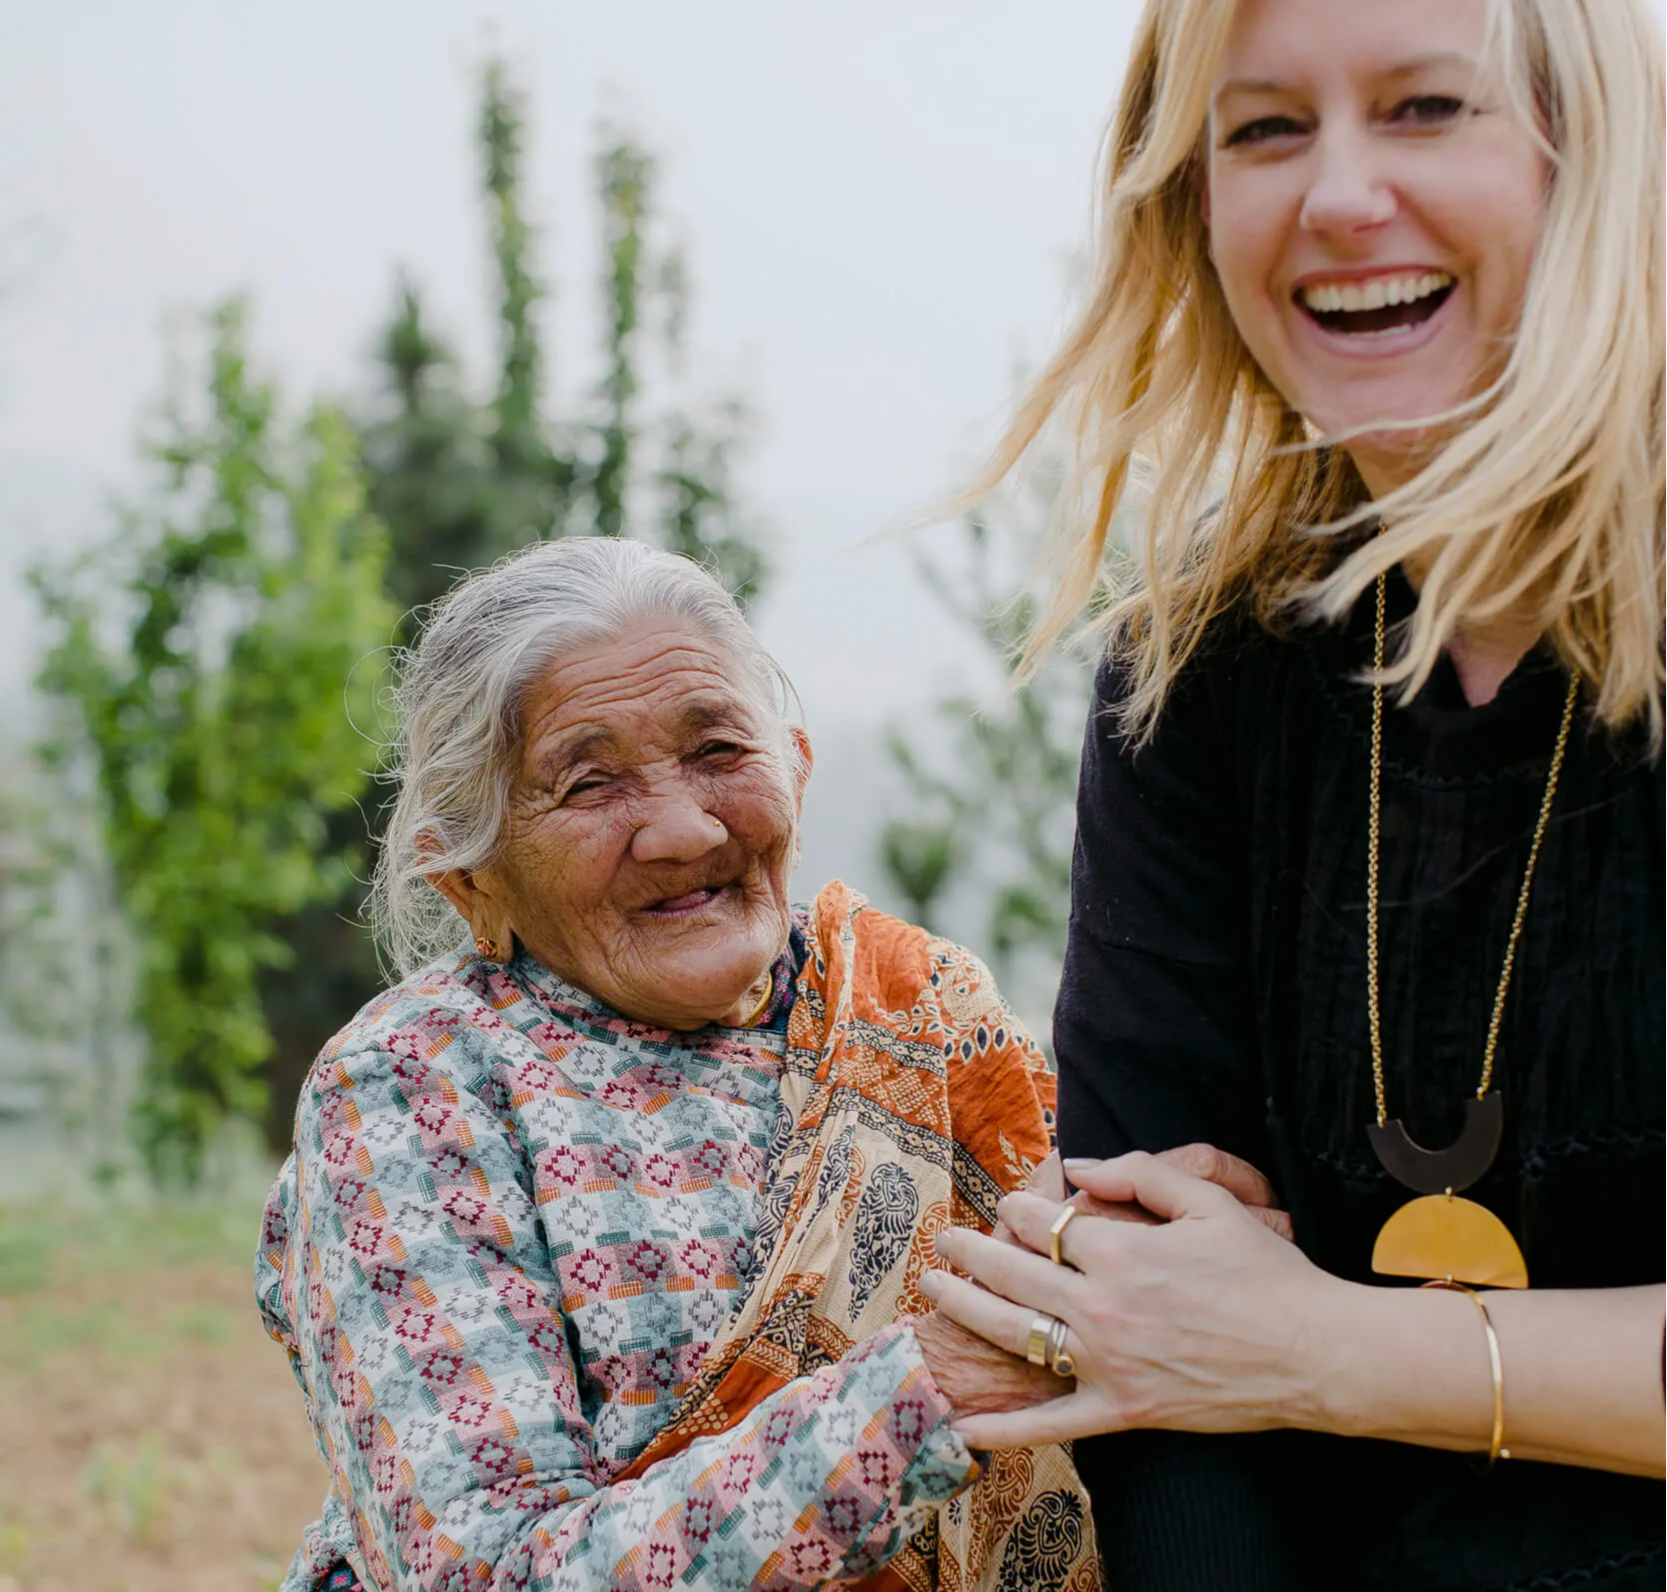 Ethical fashion brand MULXIPLY's founder Tanja Cesh works with artisans in Nepal